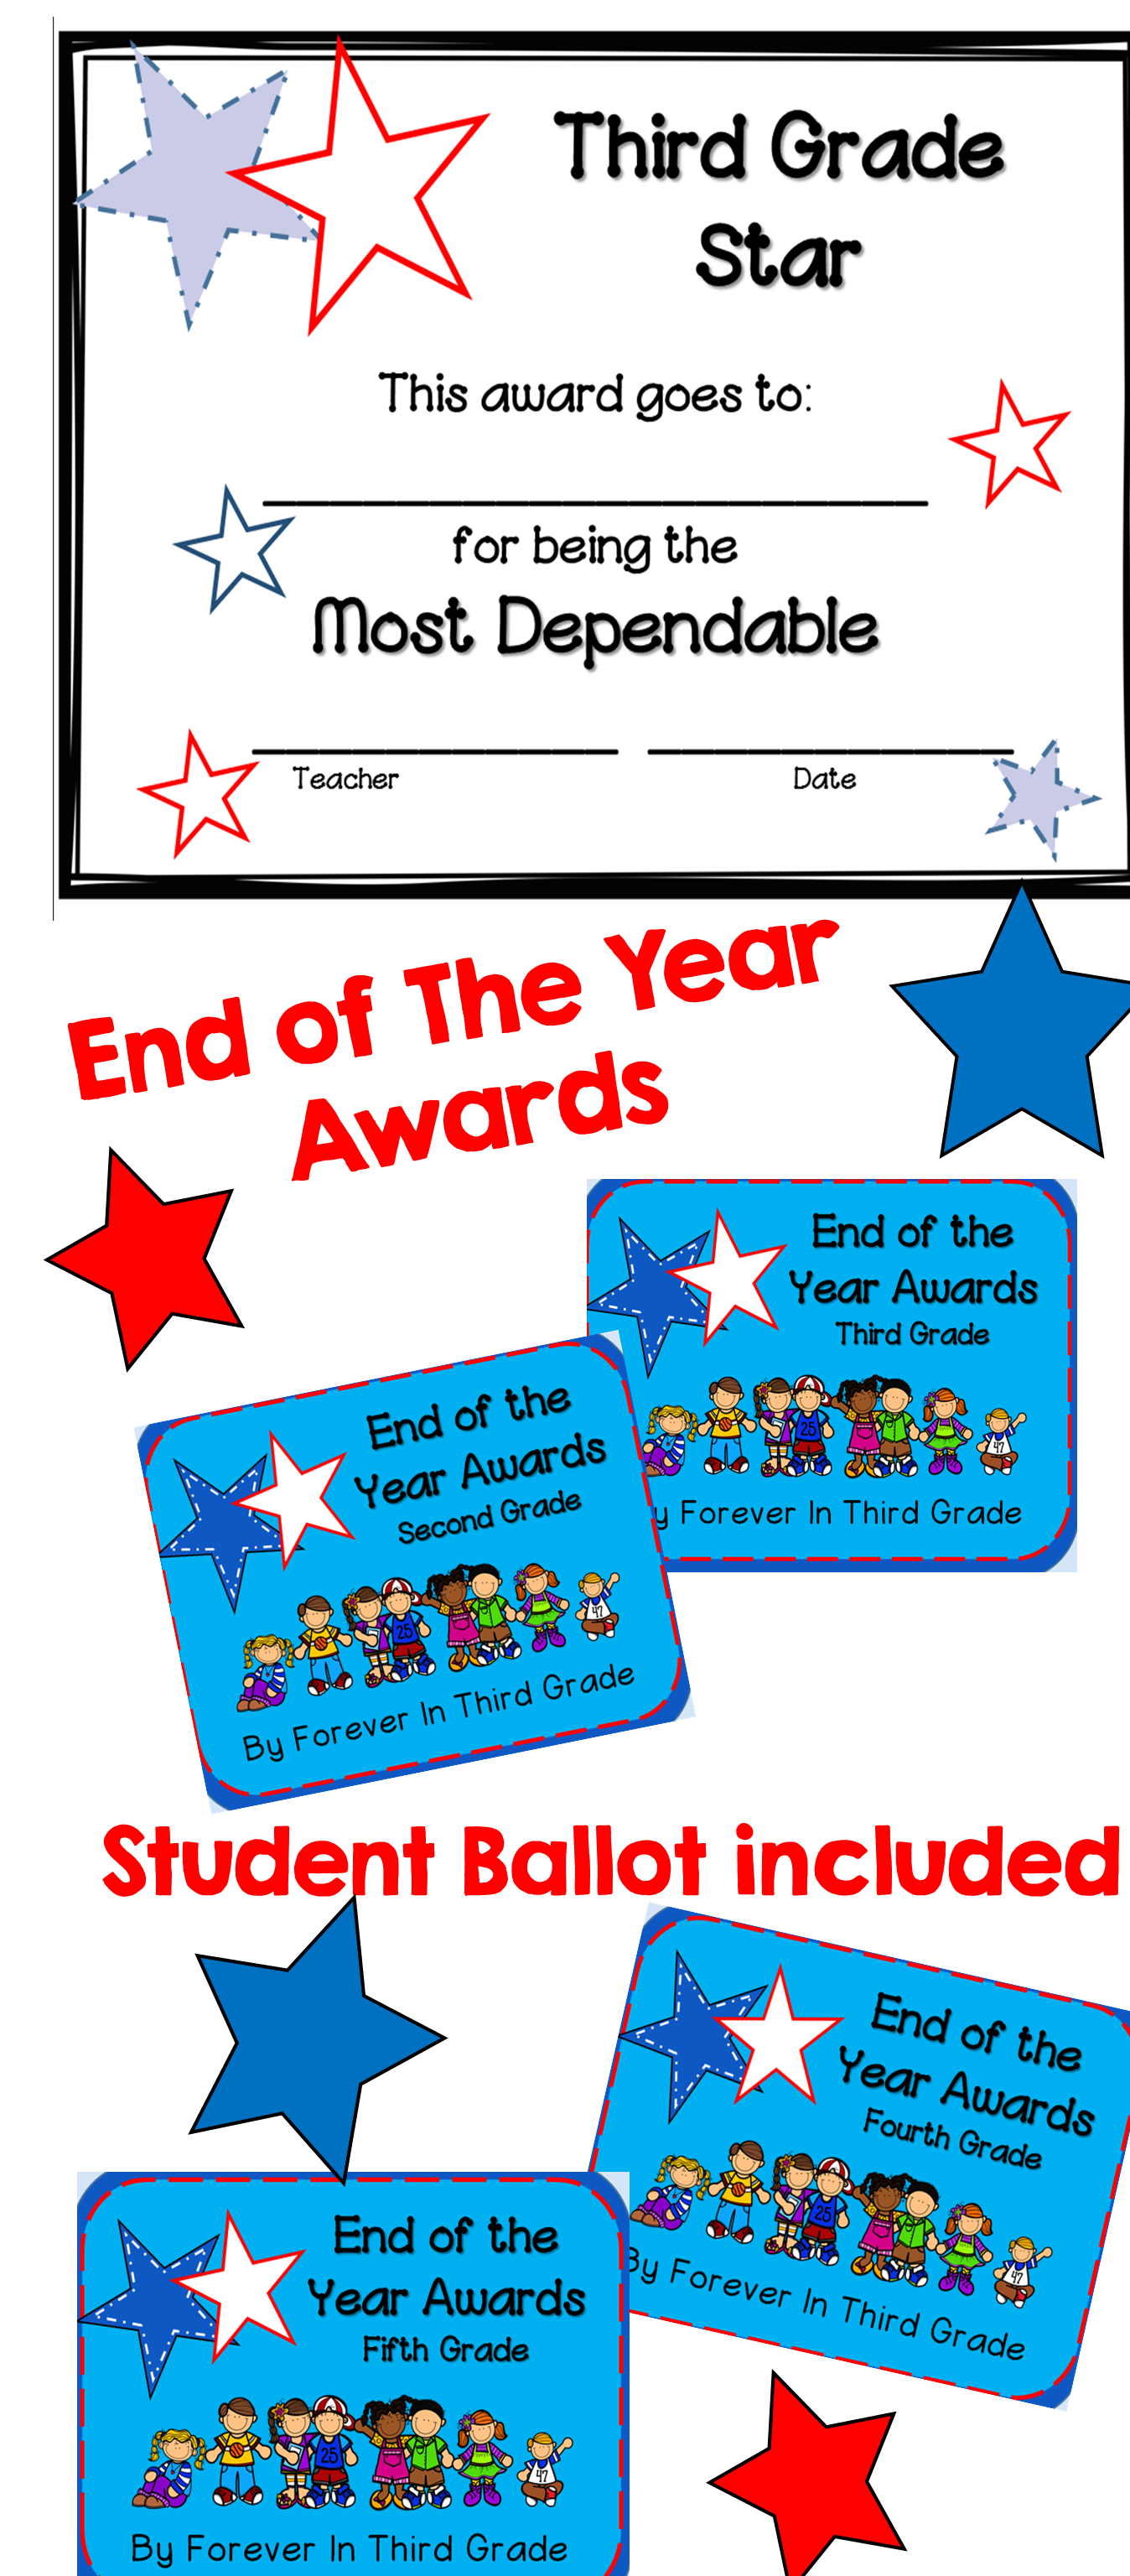 End of the year awards for each grade level 2 6 a class election end of the year awards third grade nvjuhfo Image collections